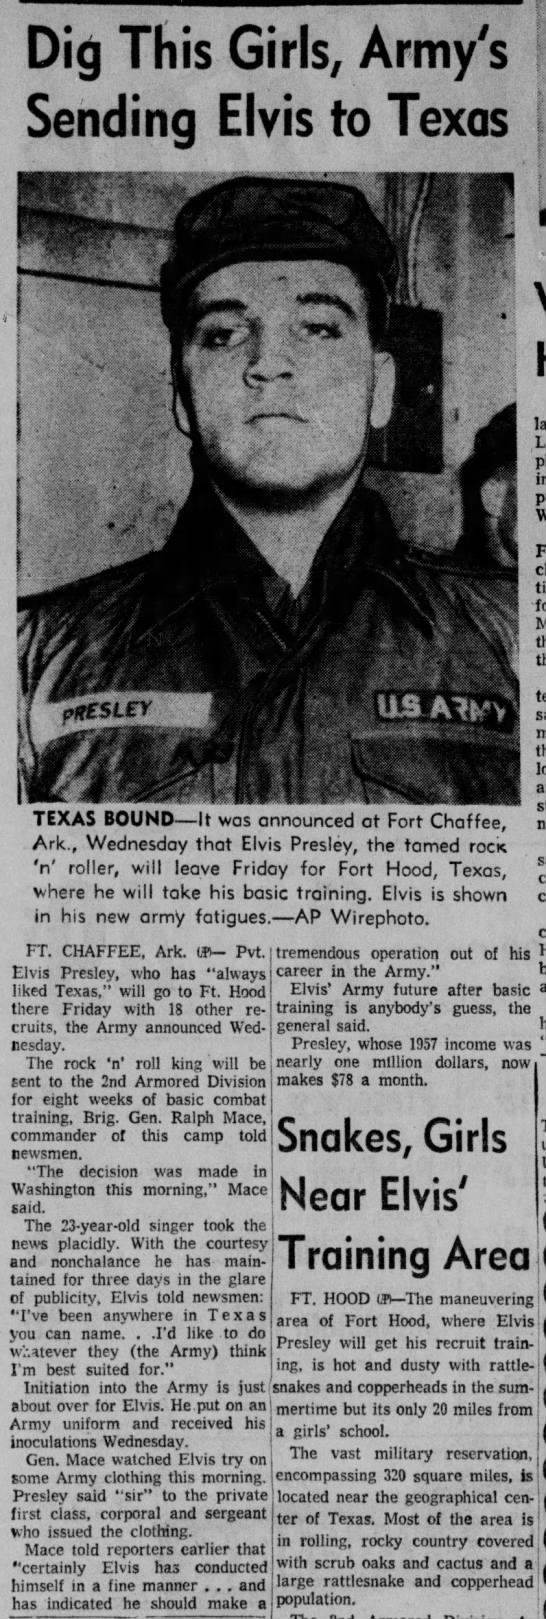 Elvis to be sent to Ft. Hood - Dig This Girls, Army's Sending Elvis to Texas...